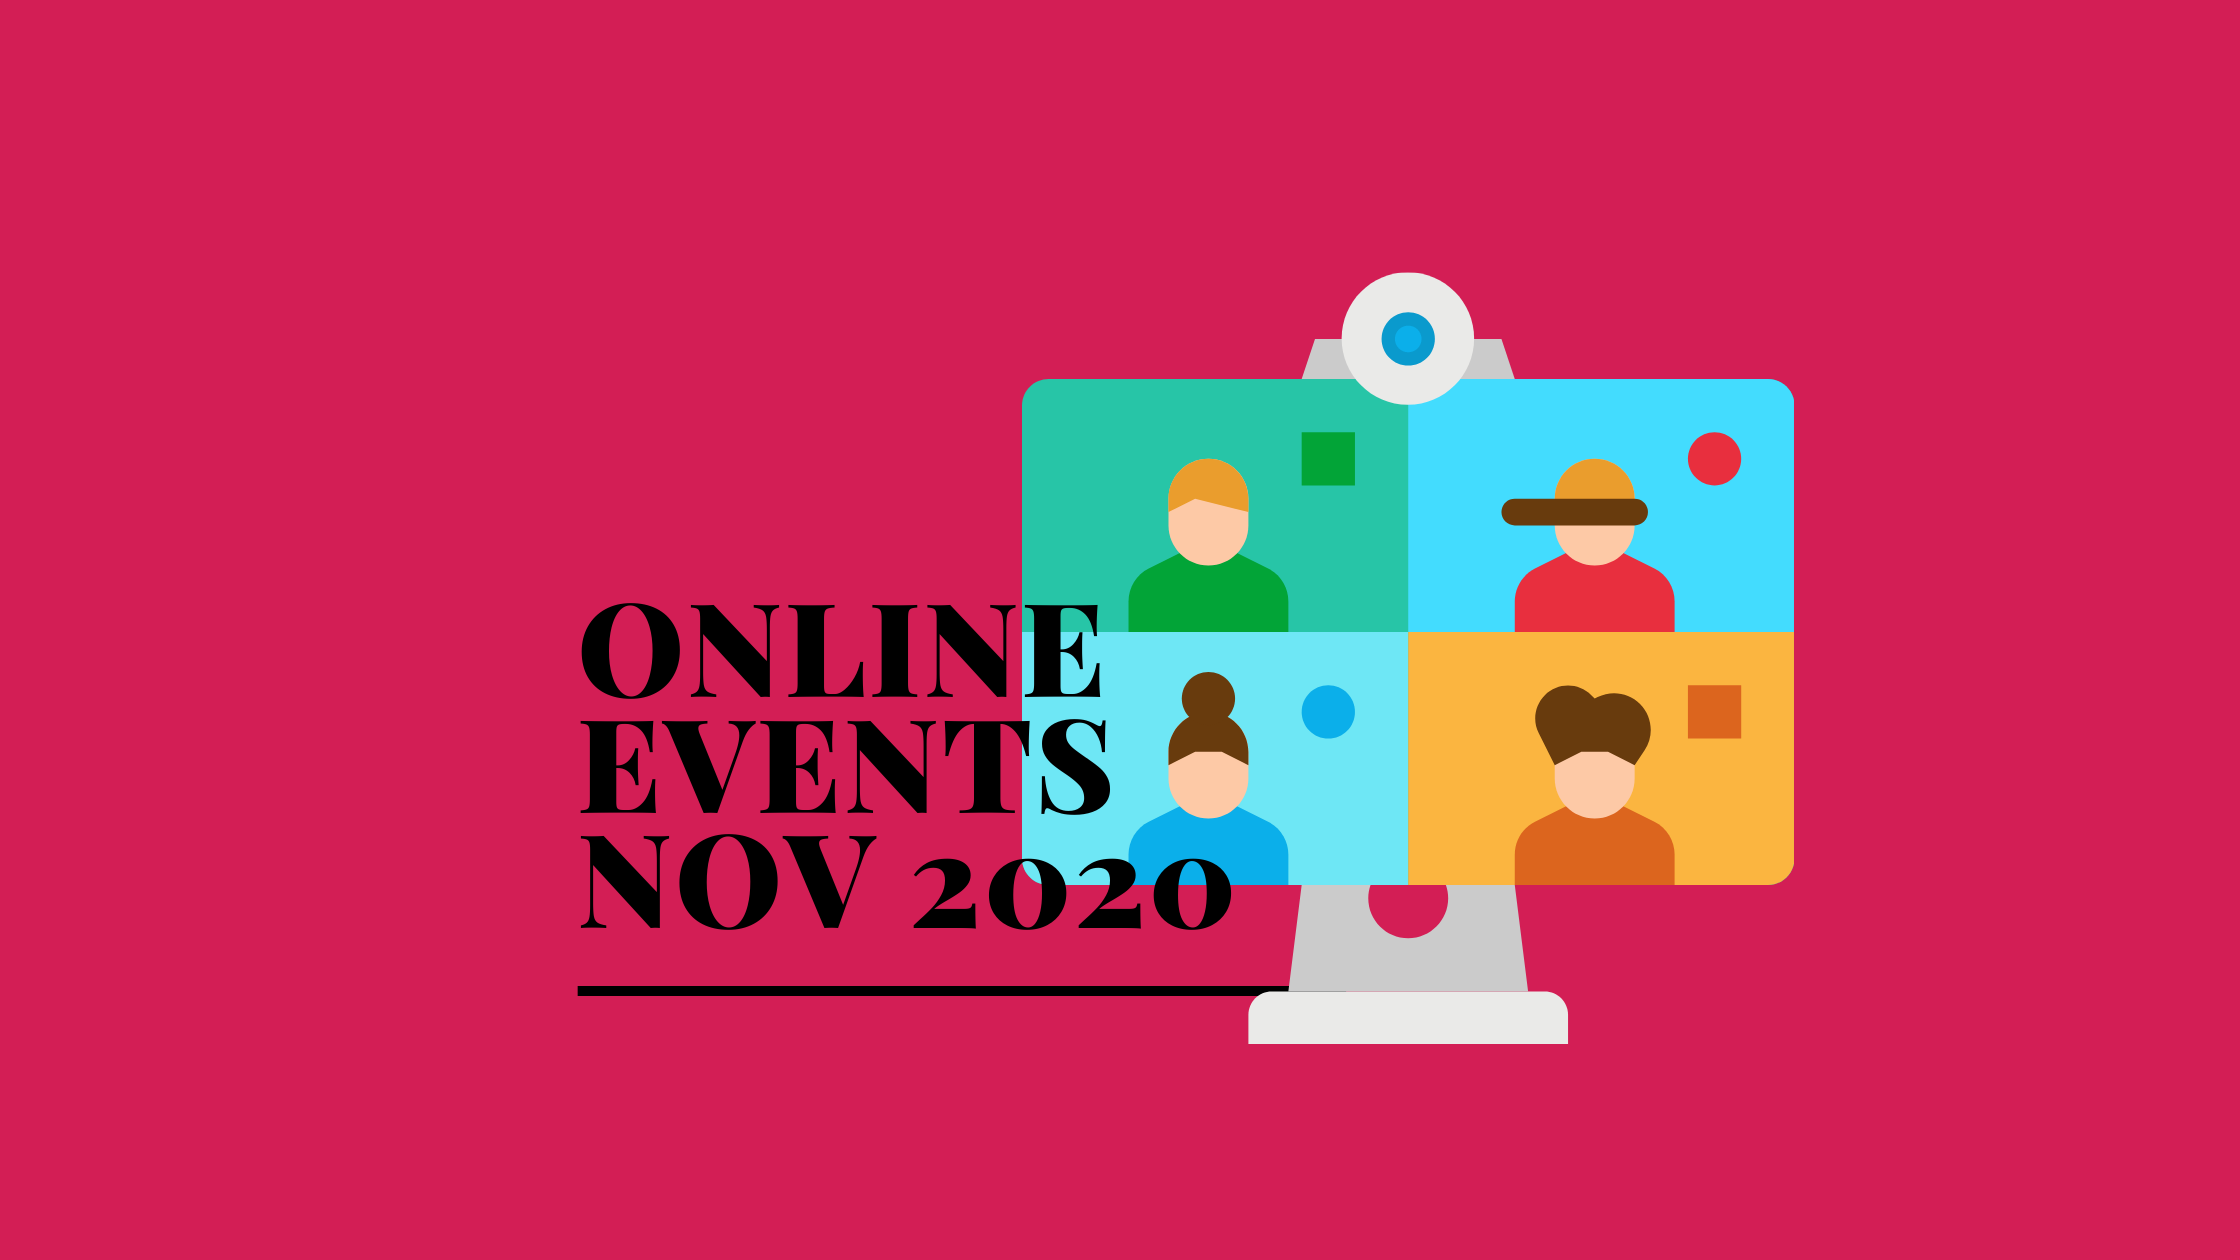 online sustainability events nov 2020